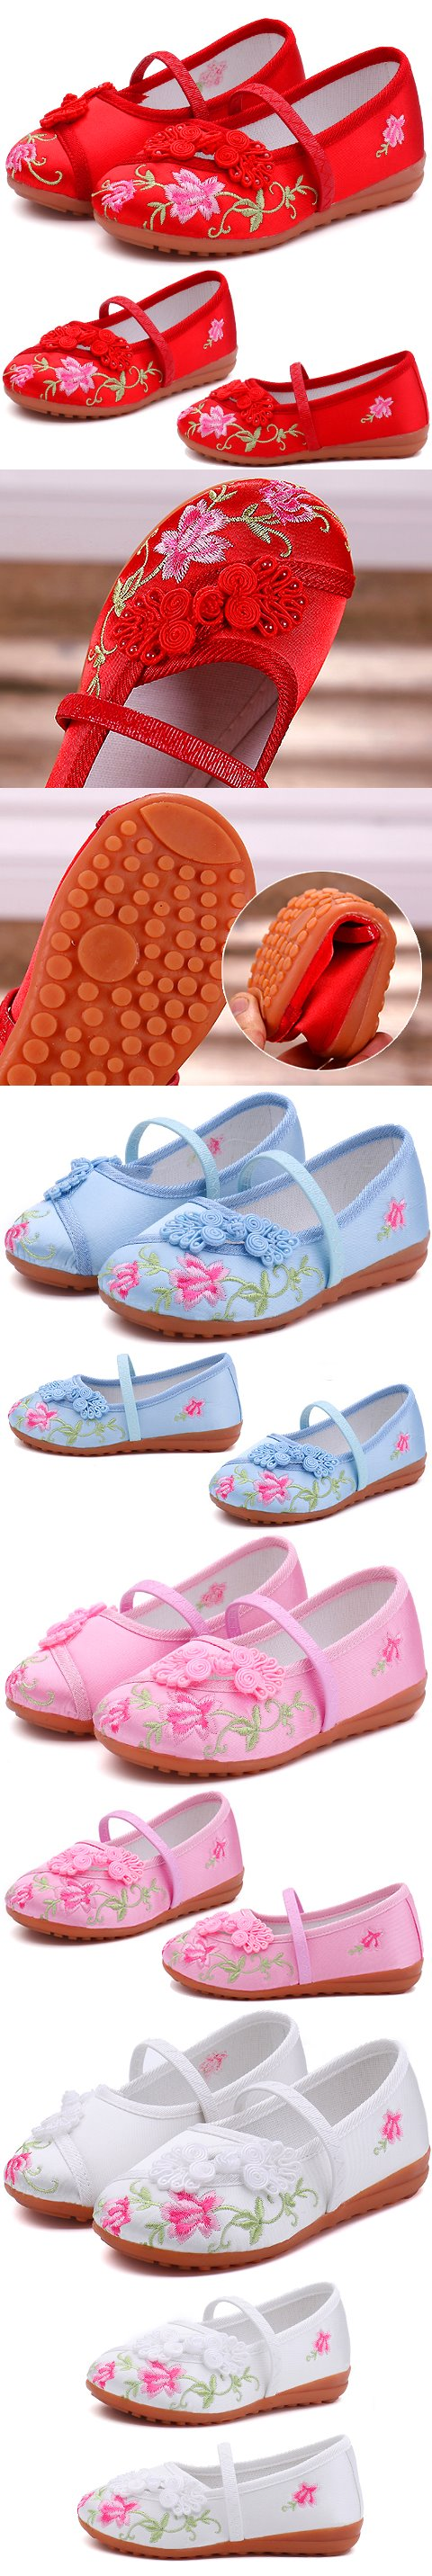 Girl's Flower Embroidery Shoes (Multi-color)